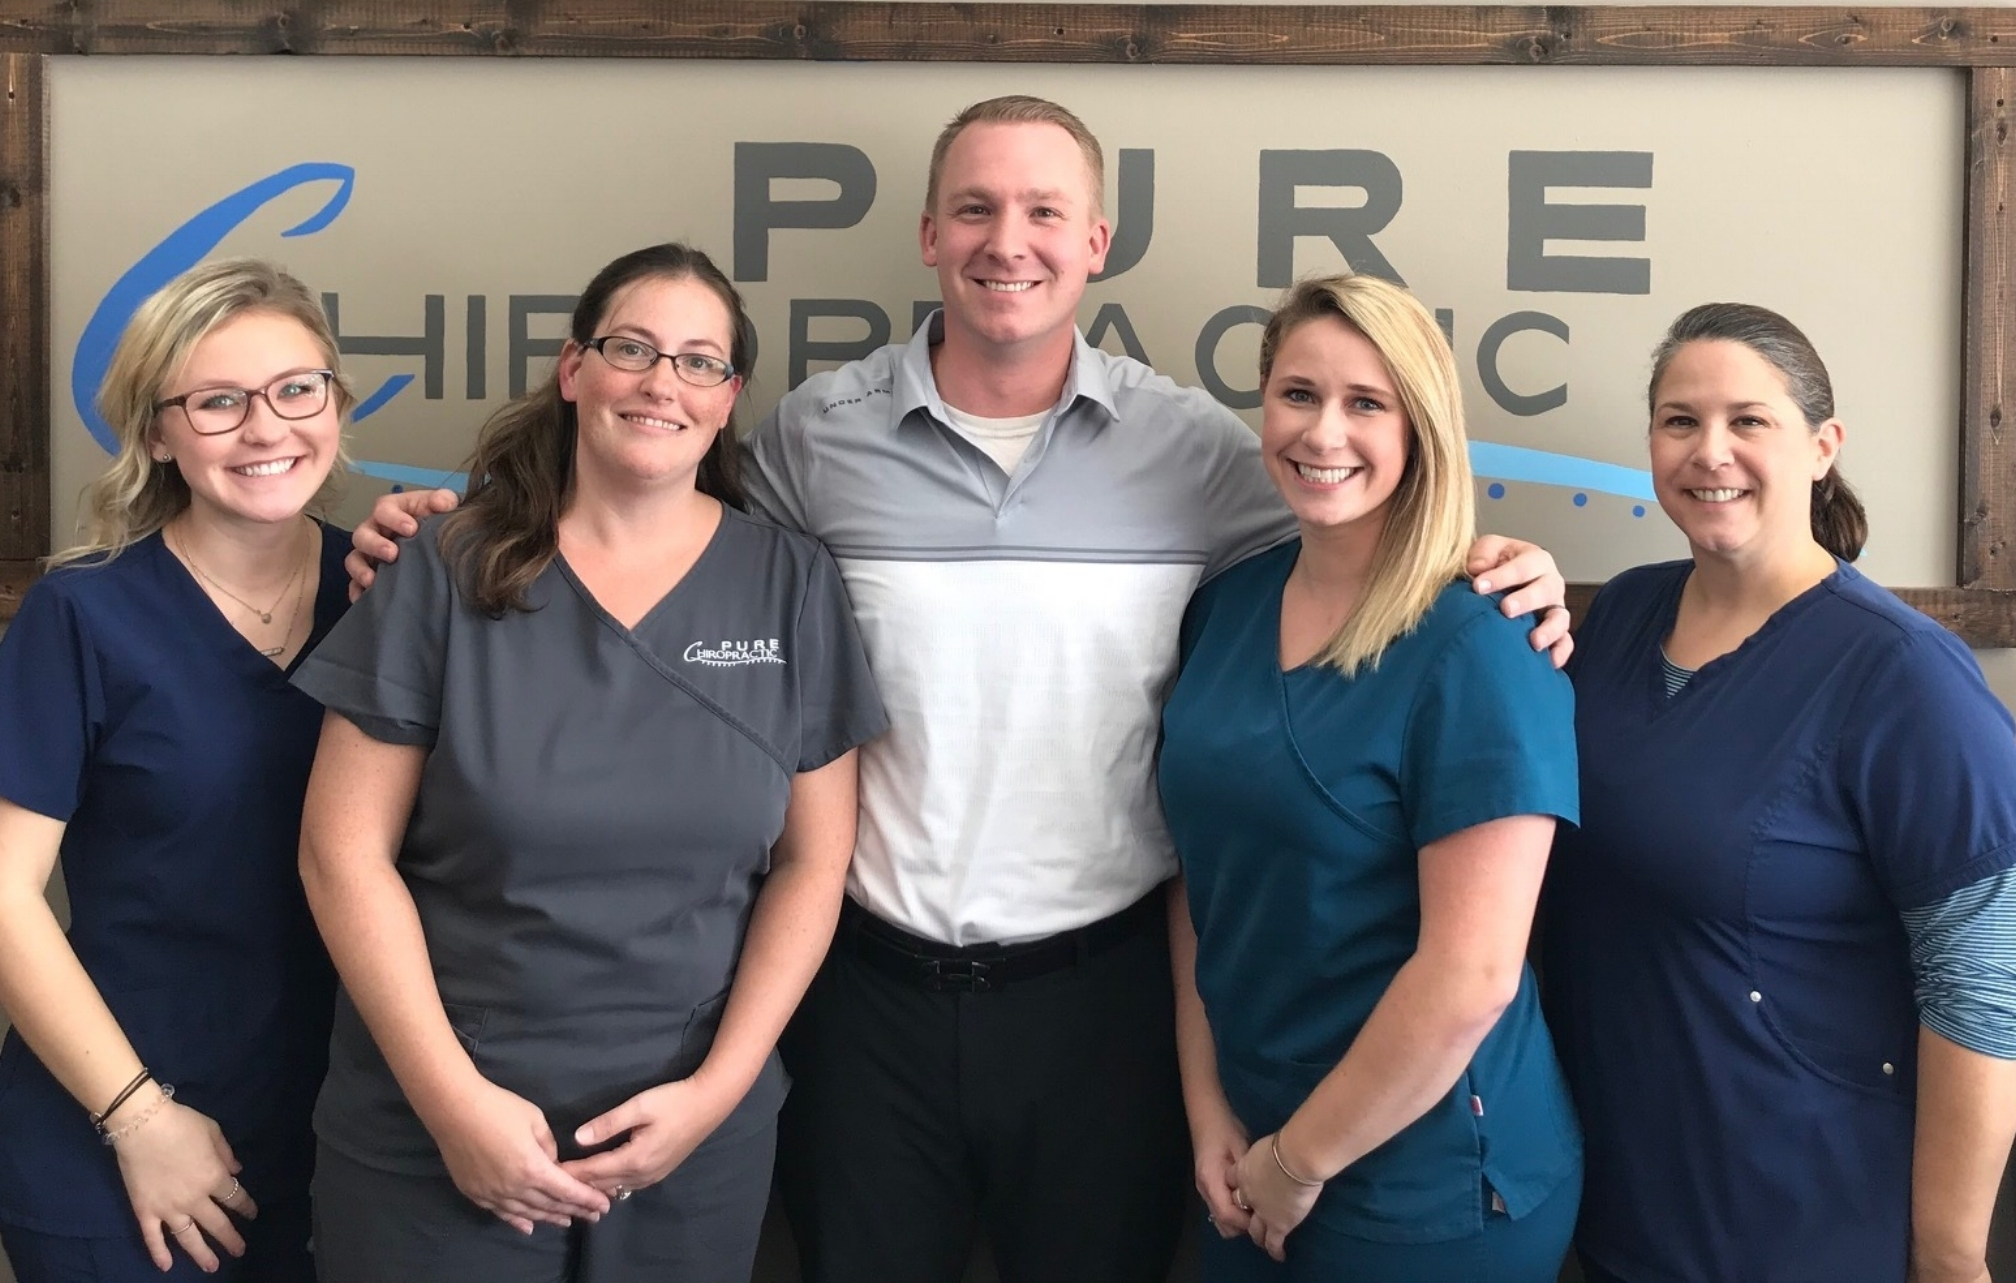 Meet our team - We work as a team to help our practice members and families achieve optimal health.